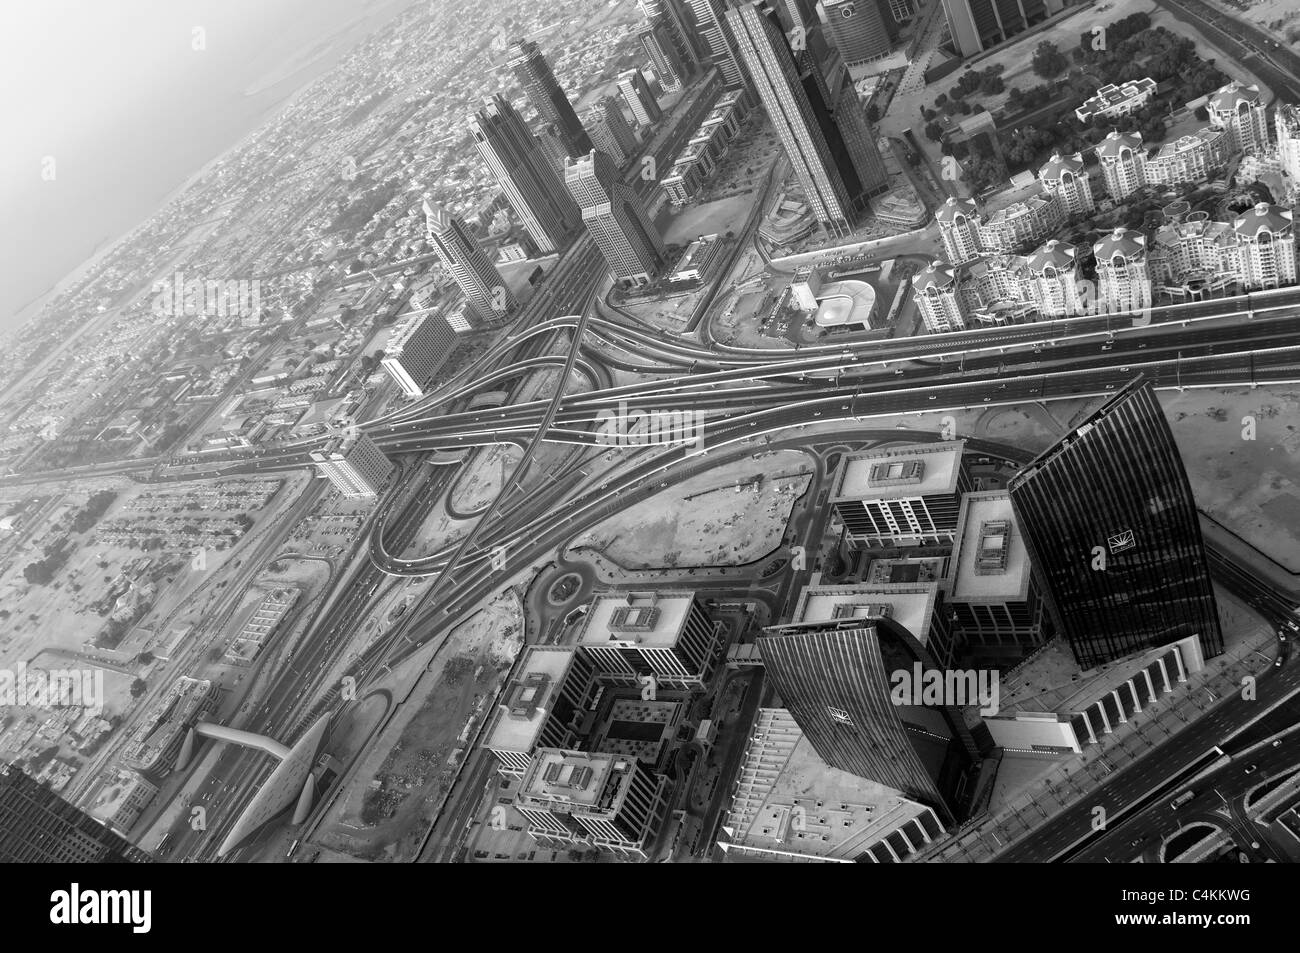 Highways in Dubai - Stock Image